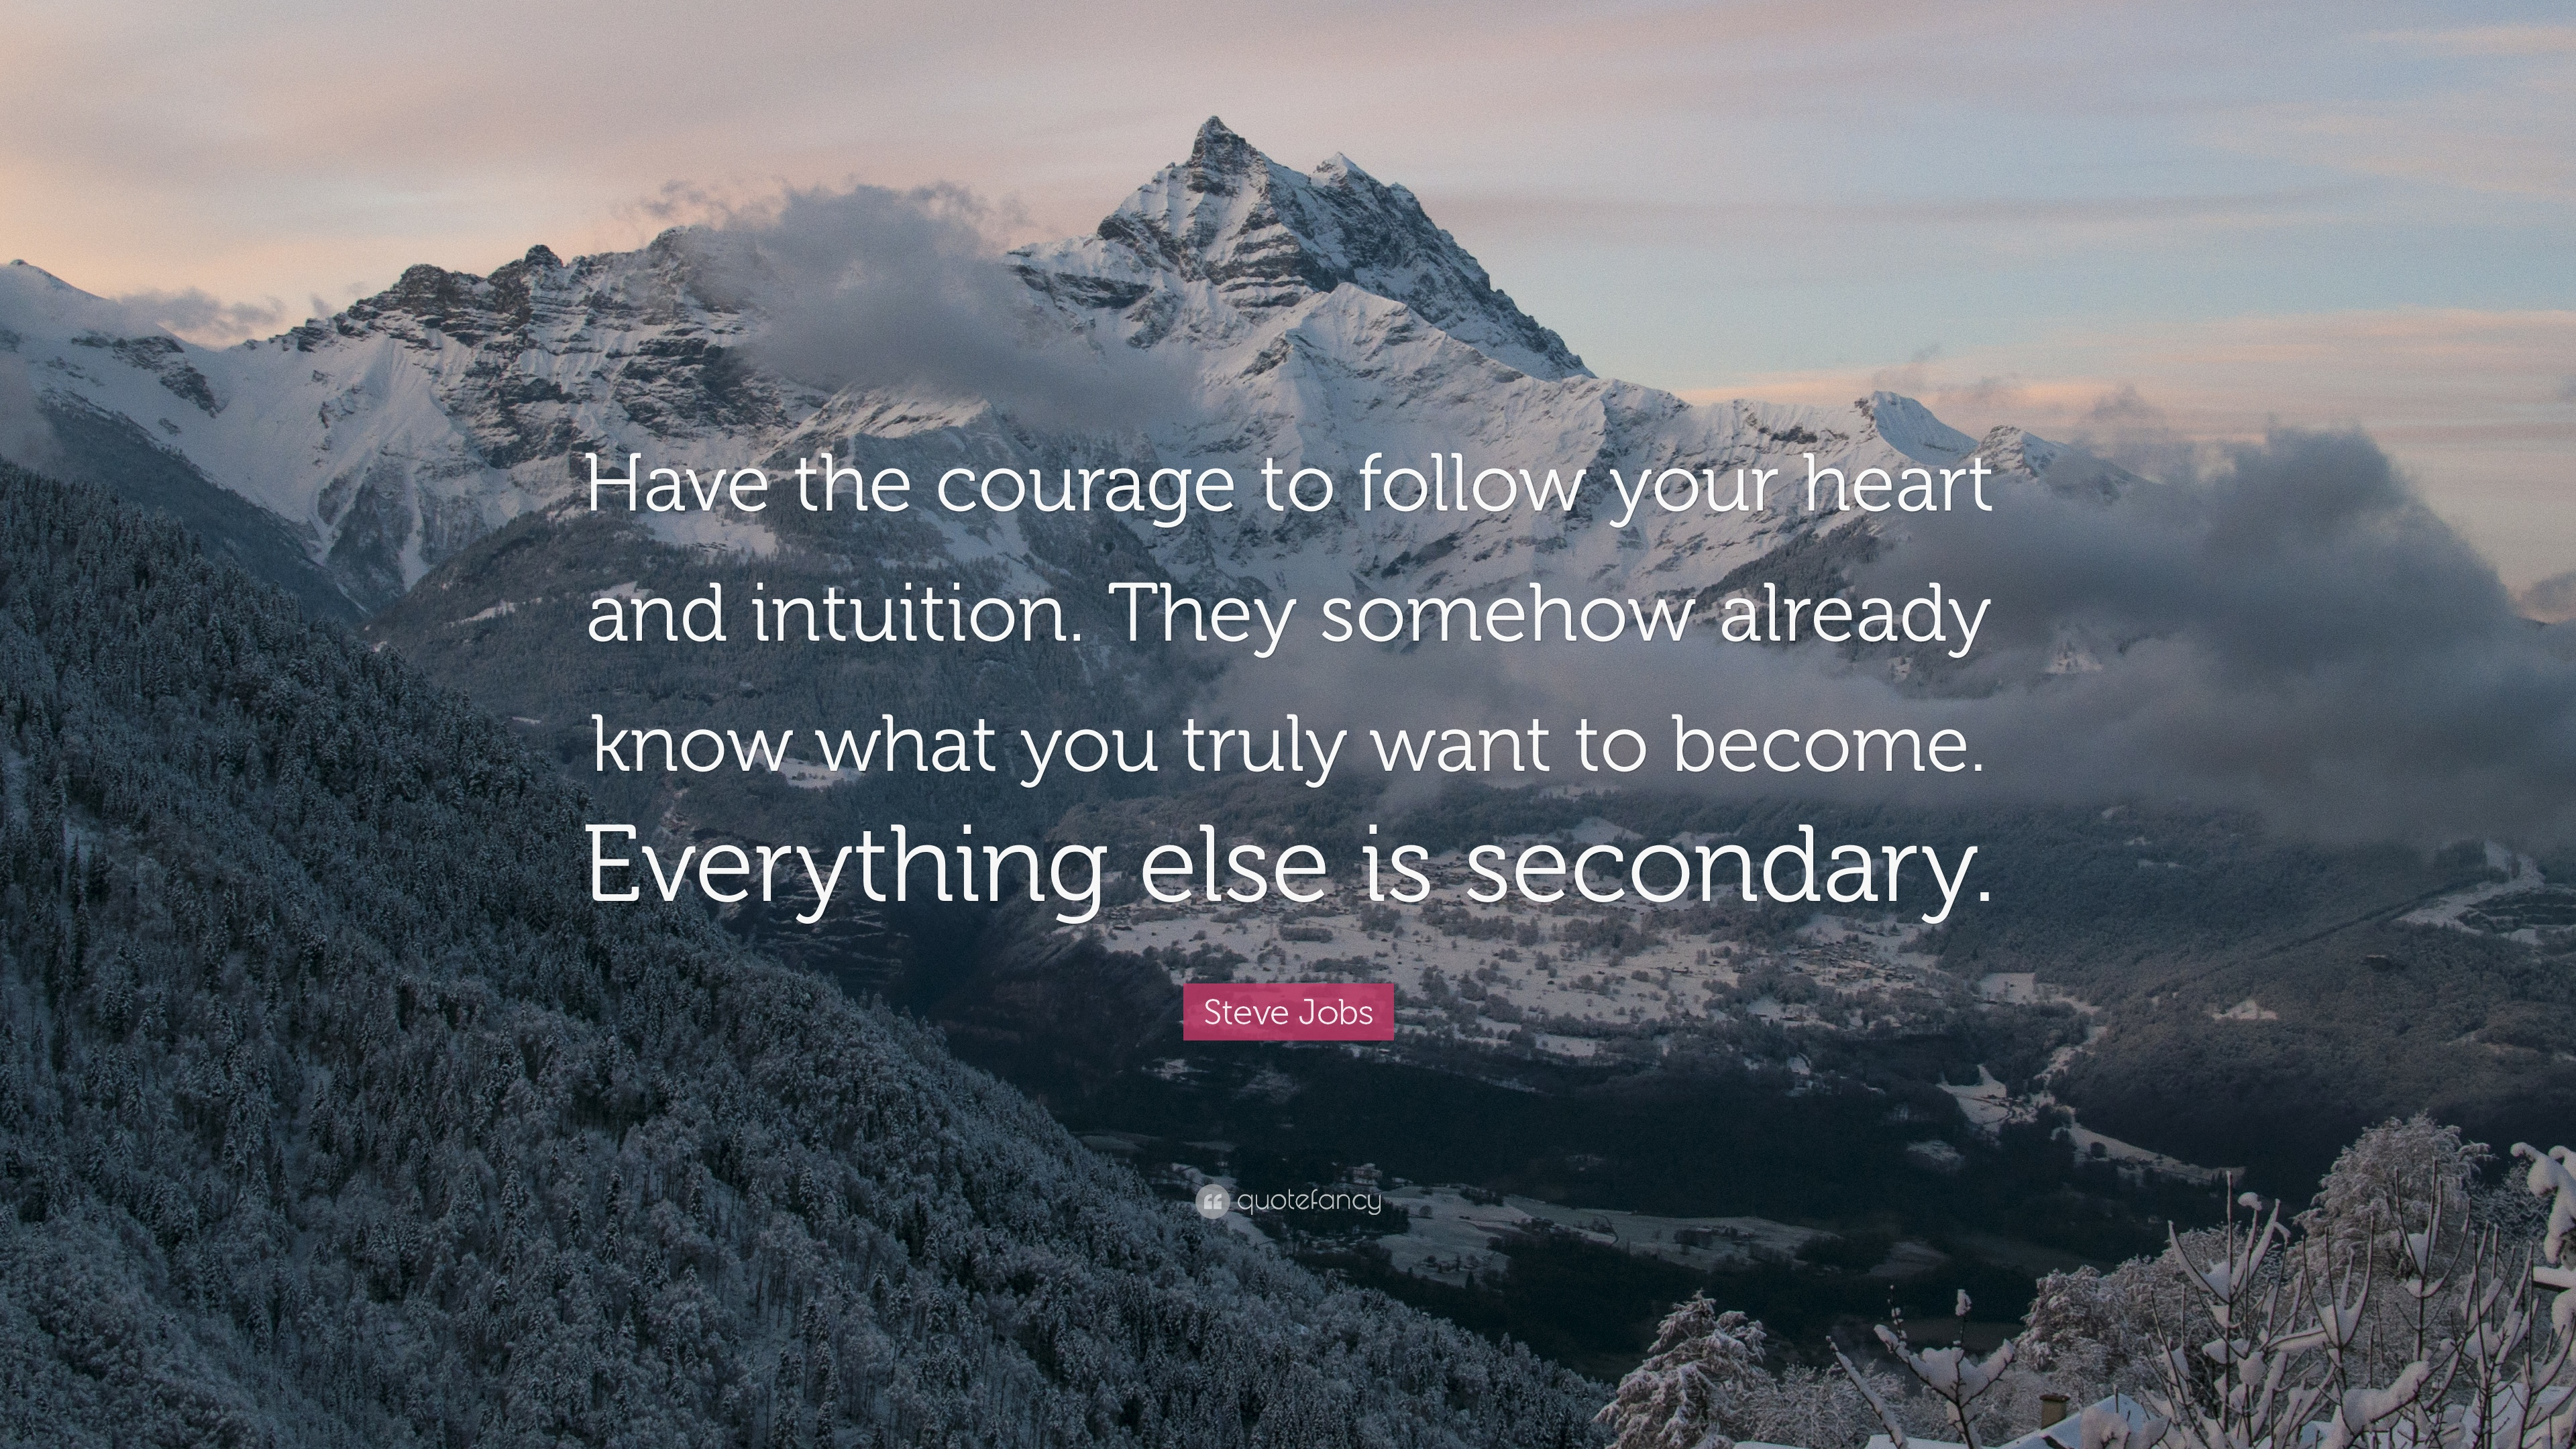 Steve Jobs Quote: U201cHave The Courage To Follow Your Heart And Intuition. They